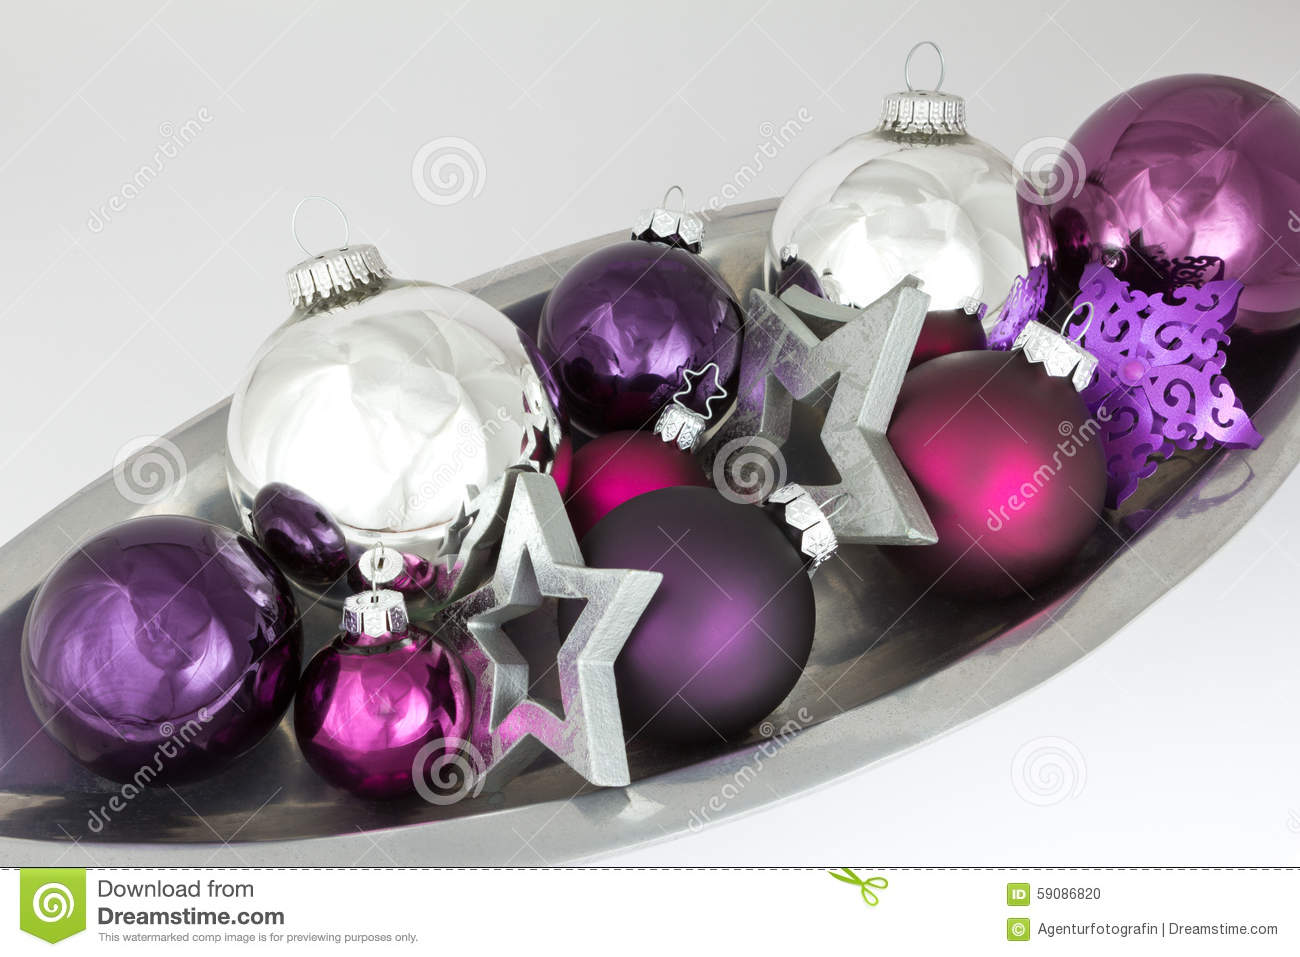 Purple silver and white christmas decorations - Balls Bowl Christmas Decoration Ornaments Purple Silver Stars Tree Violet White